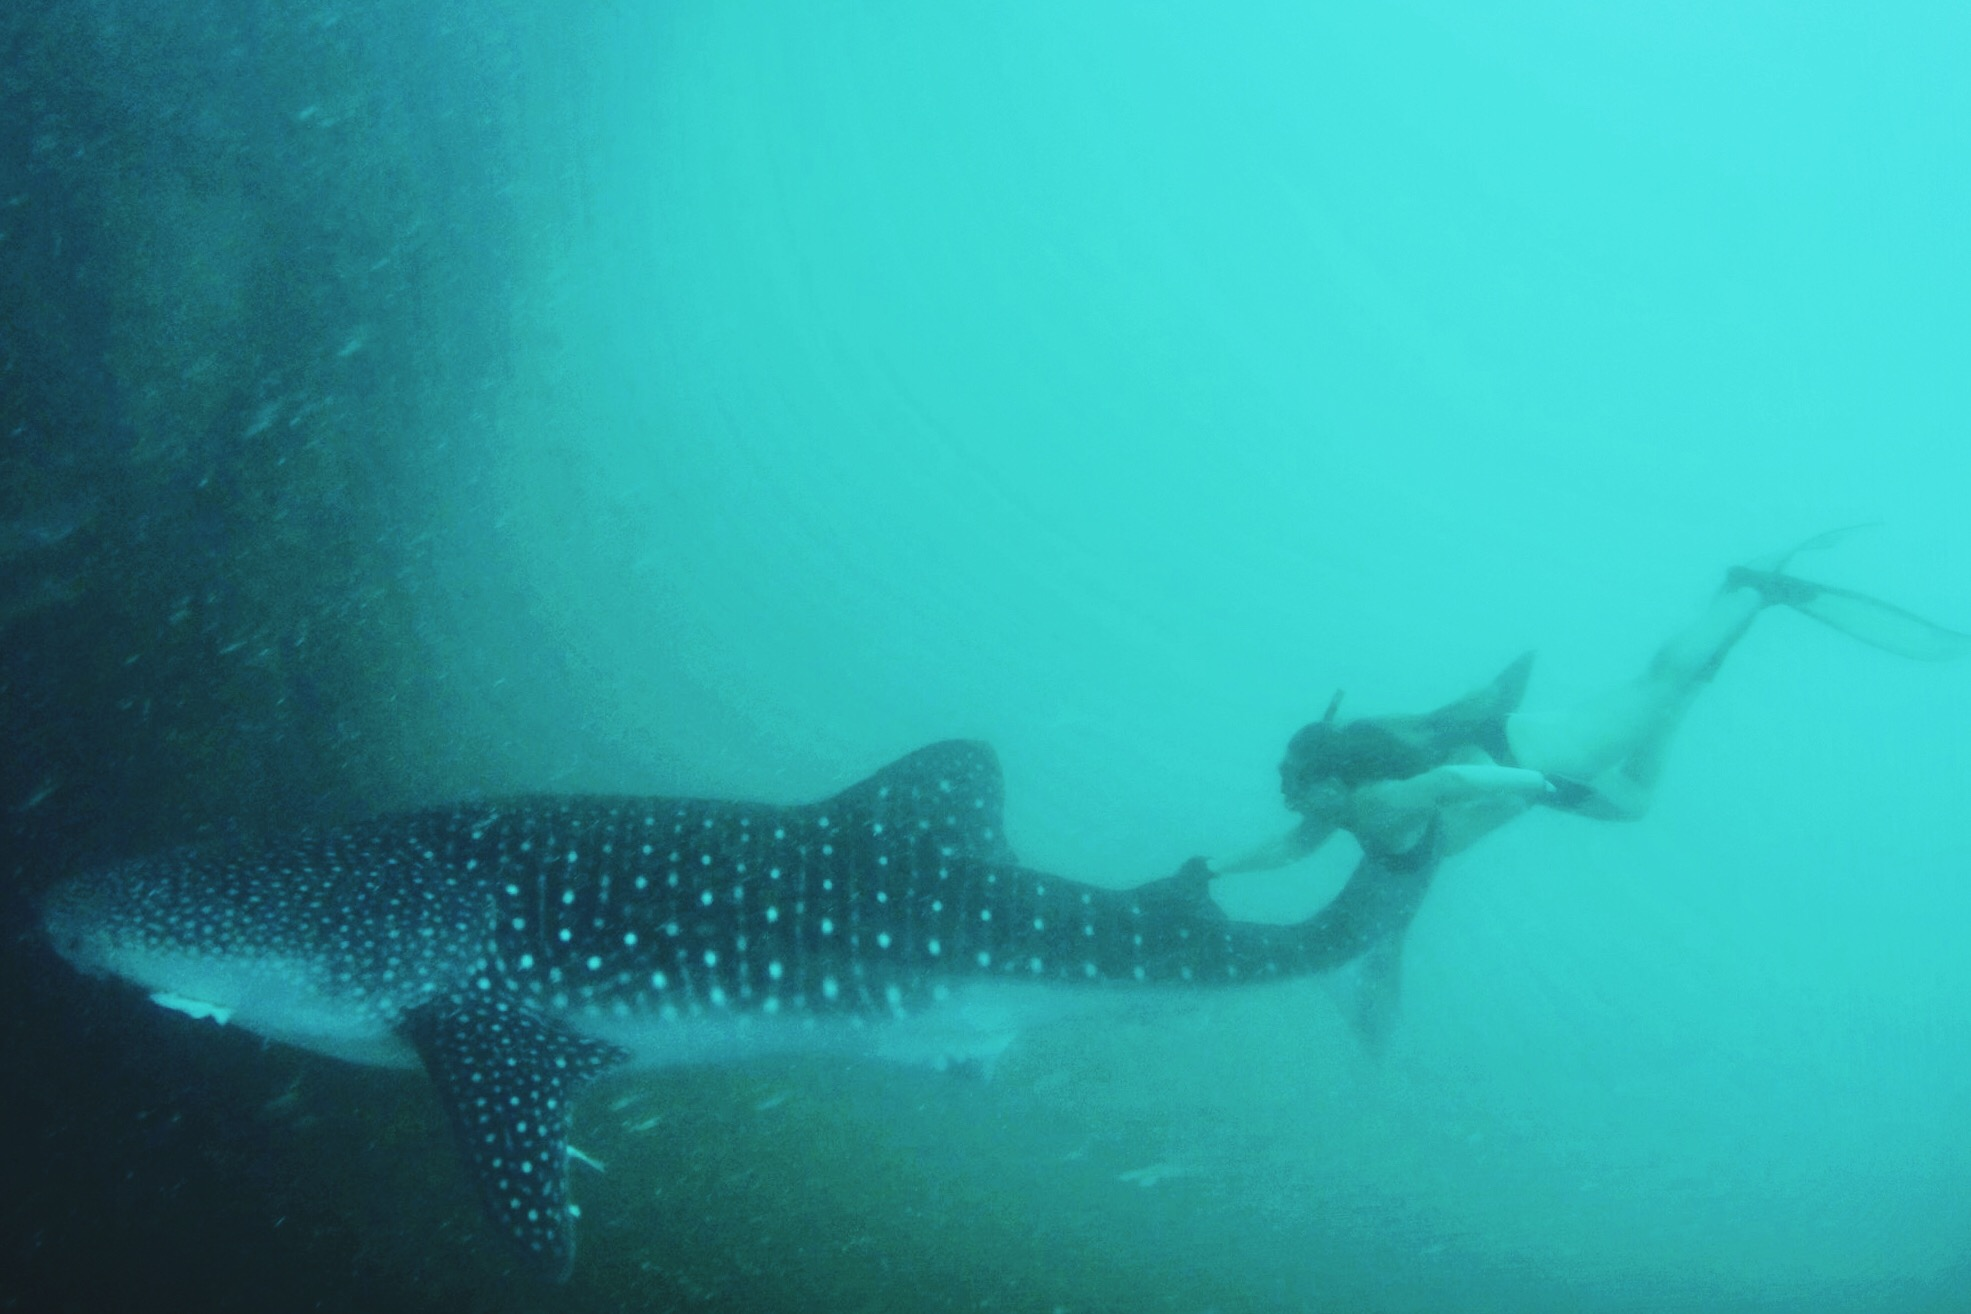 THIS PICTURE WAS TAKEN BY MY FATHER WHILE WE WERE FREE DIVING IN THE NORTHERN BEACHES OF PERU WITH WHALE SHARKS.